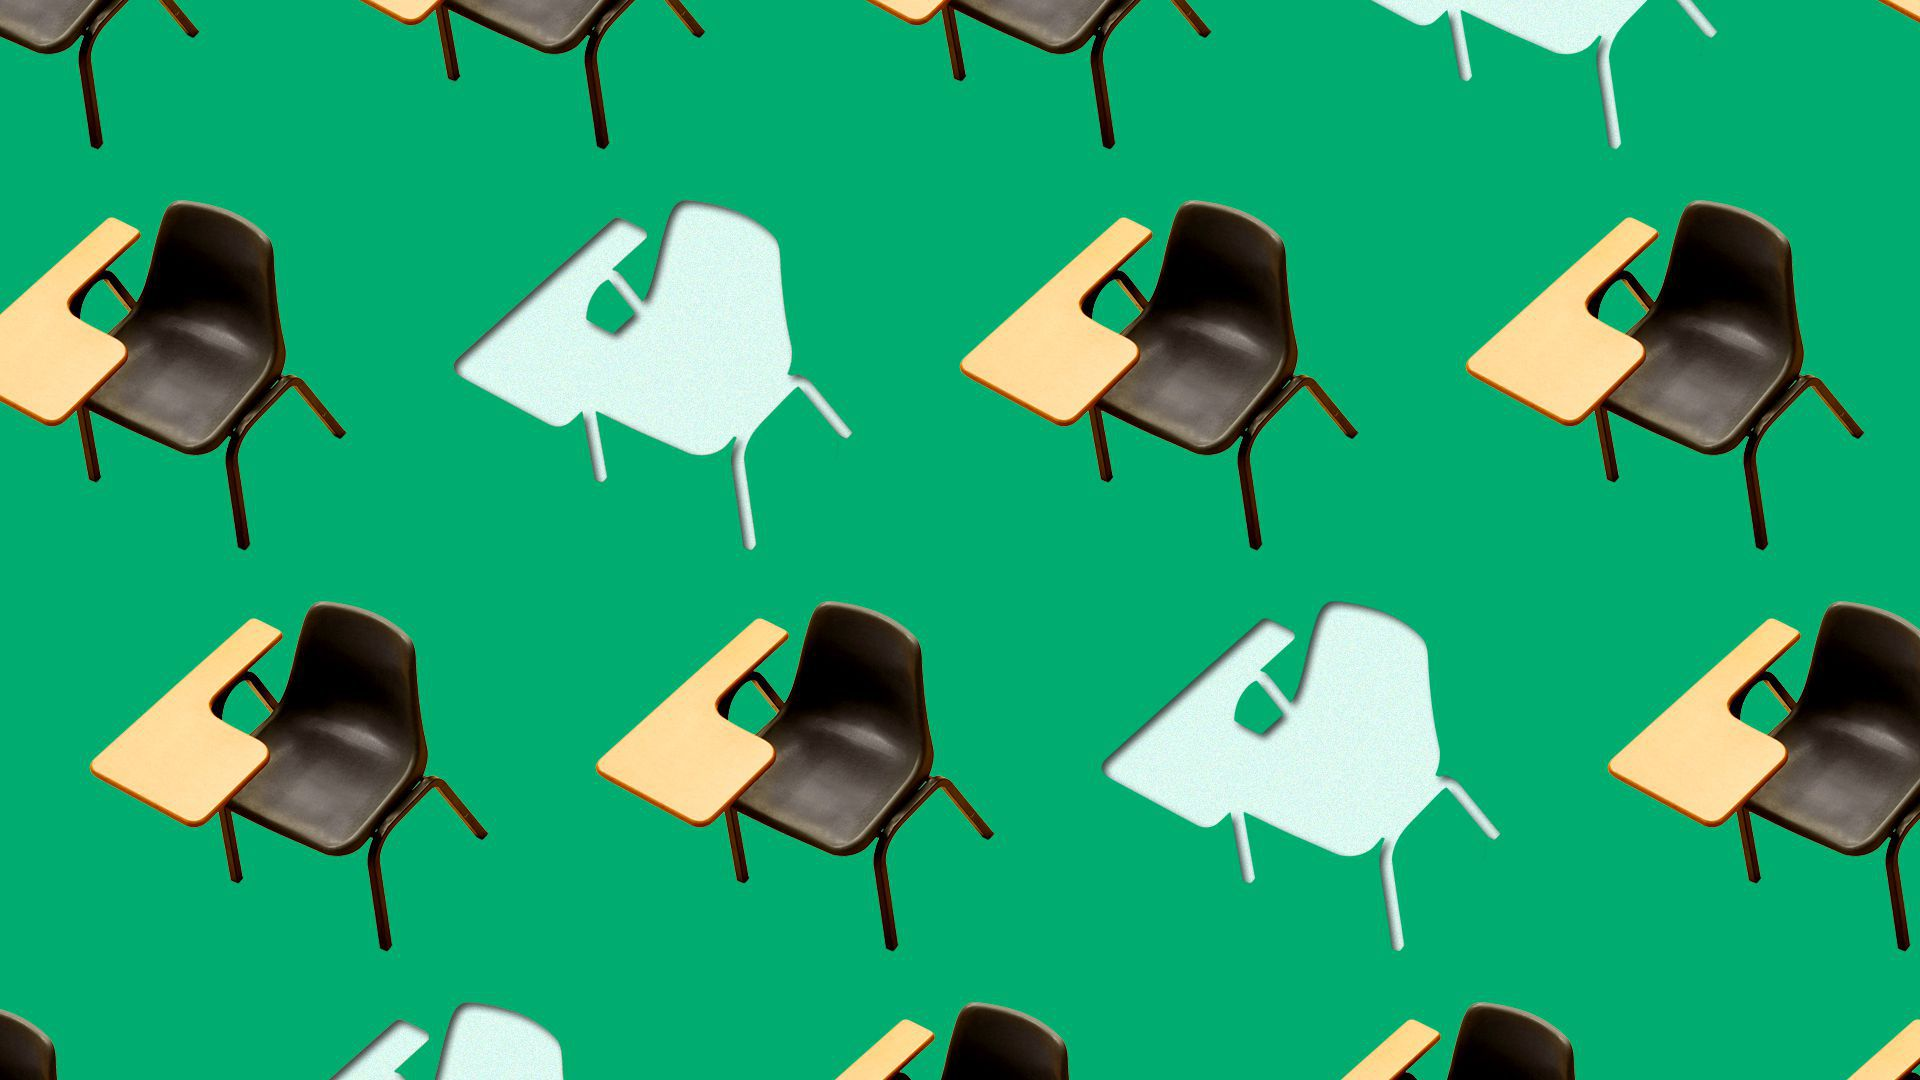 Illustration of school desks, some of them cut out with nothing behind them.